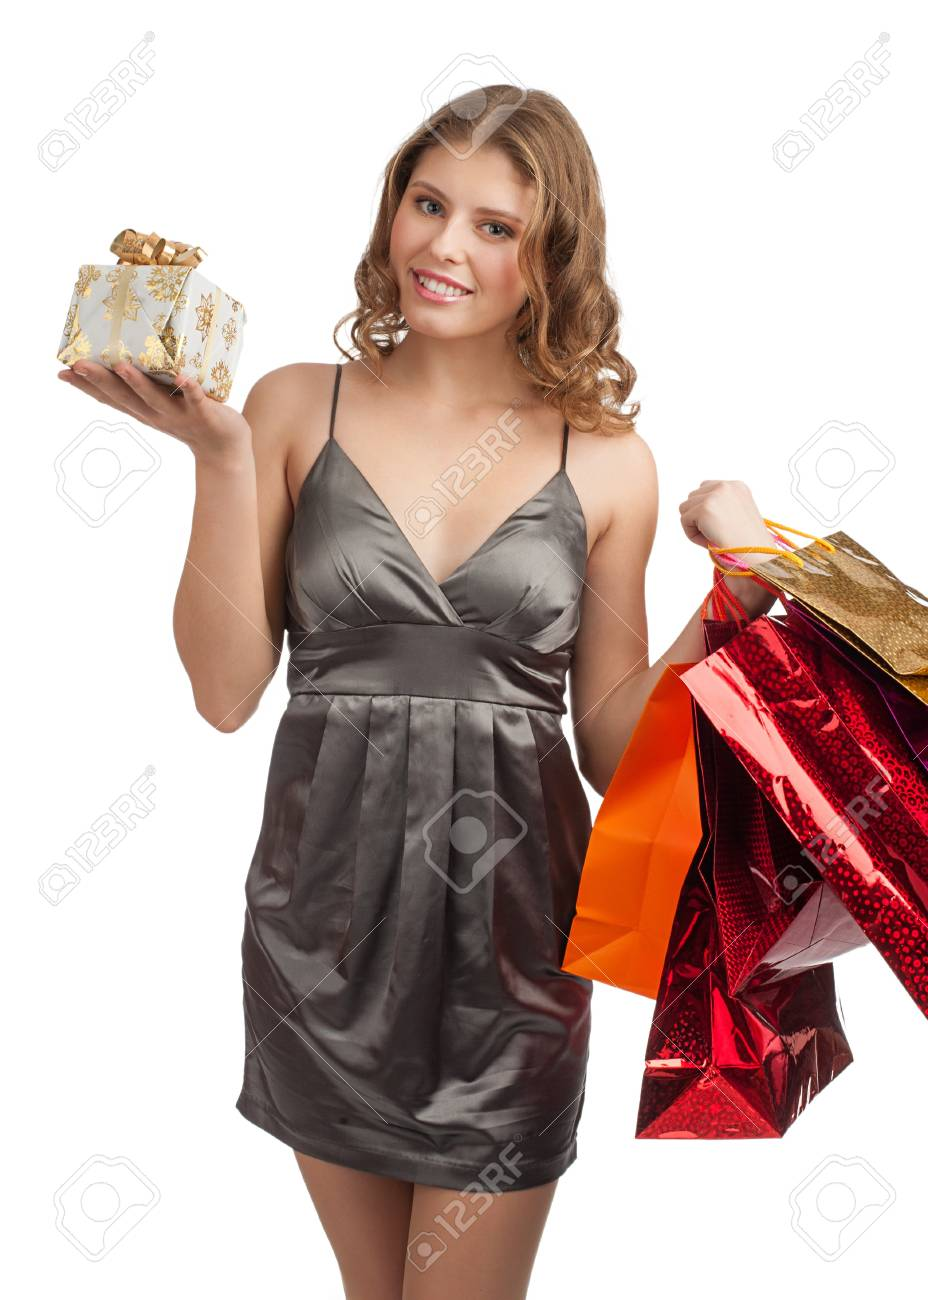 Woman shopping for christmas gifts. Happy young caucasian woman with gifts and shopping bags. Stock Photo - 11374989